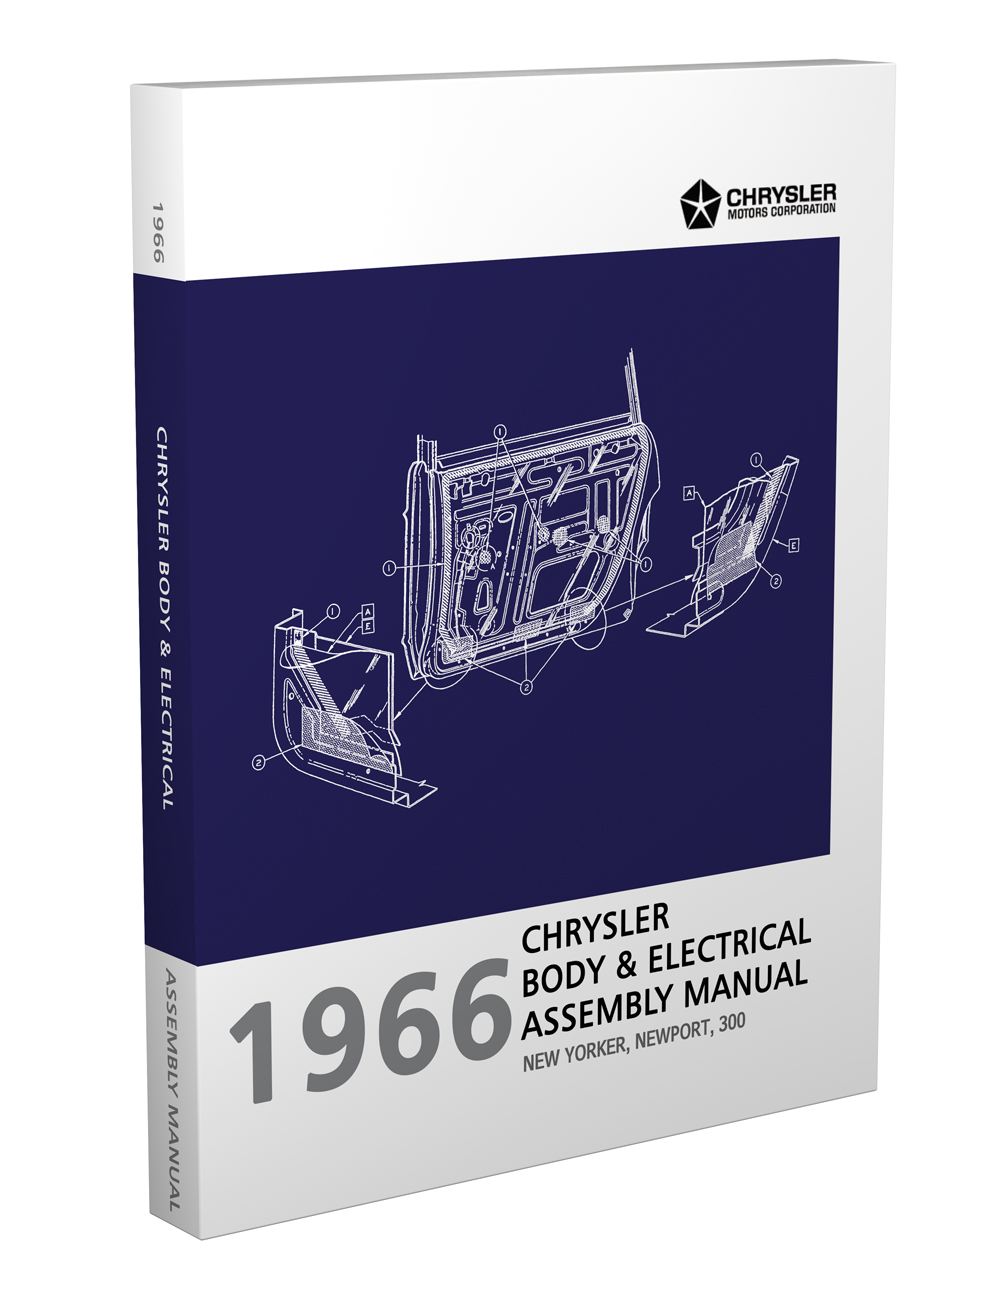 hight resolution of 1966 chrysler body electrical assembly manual reprint